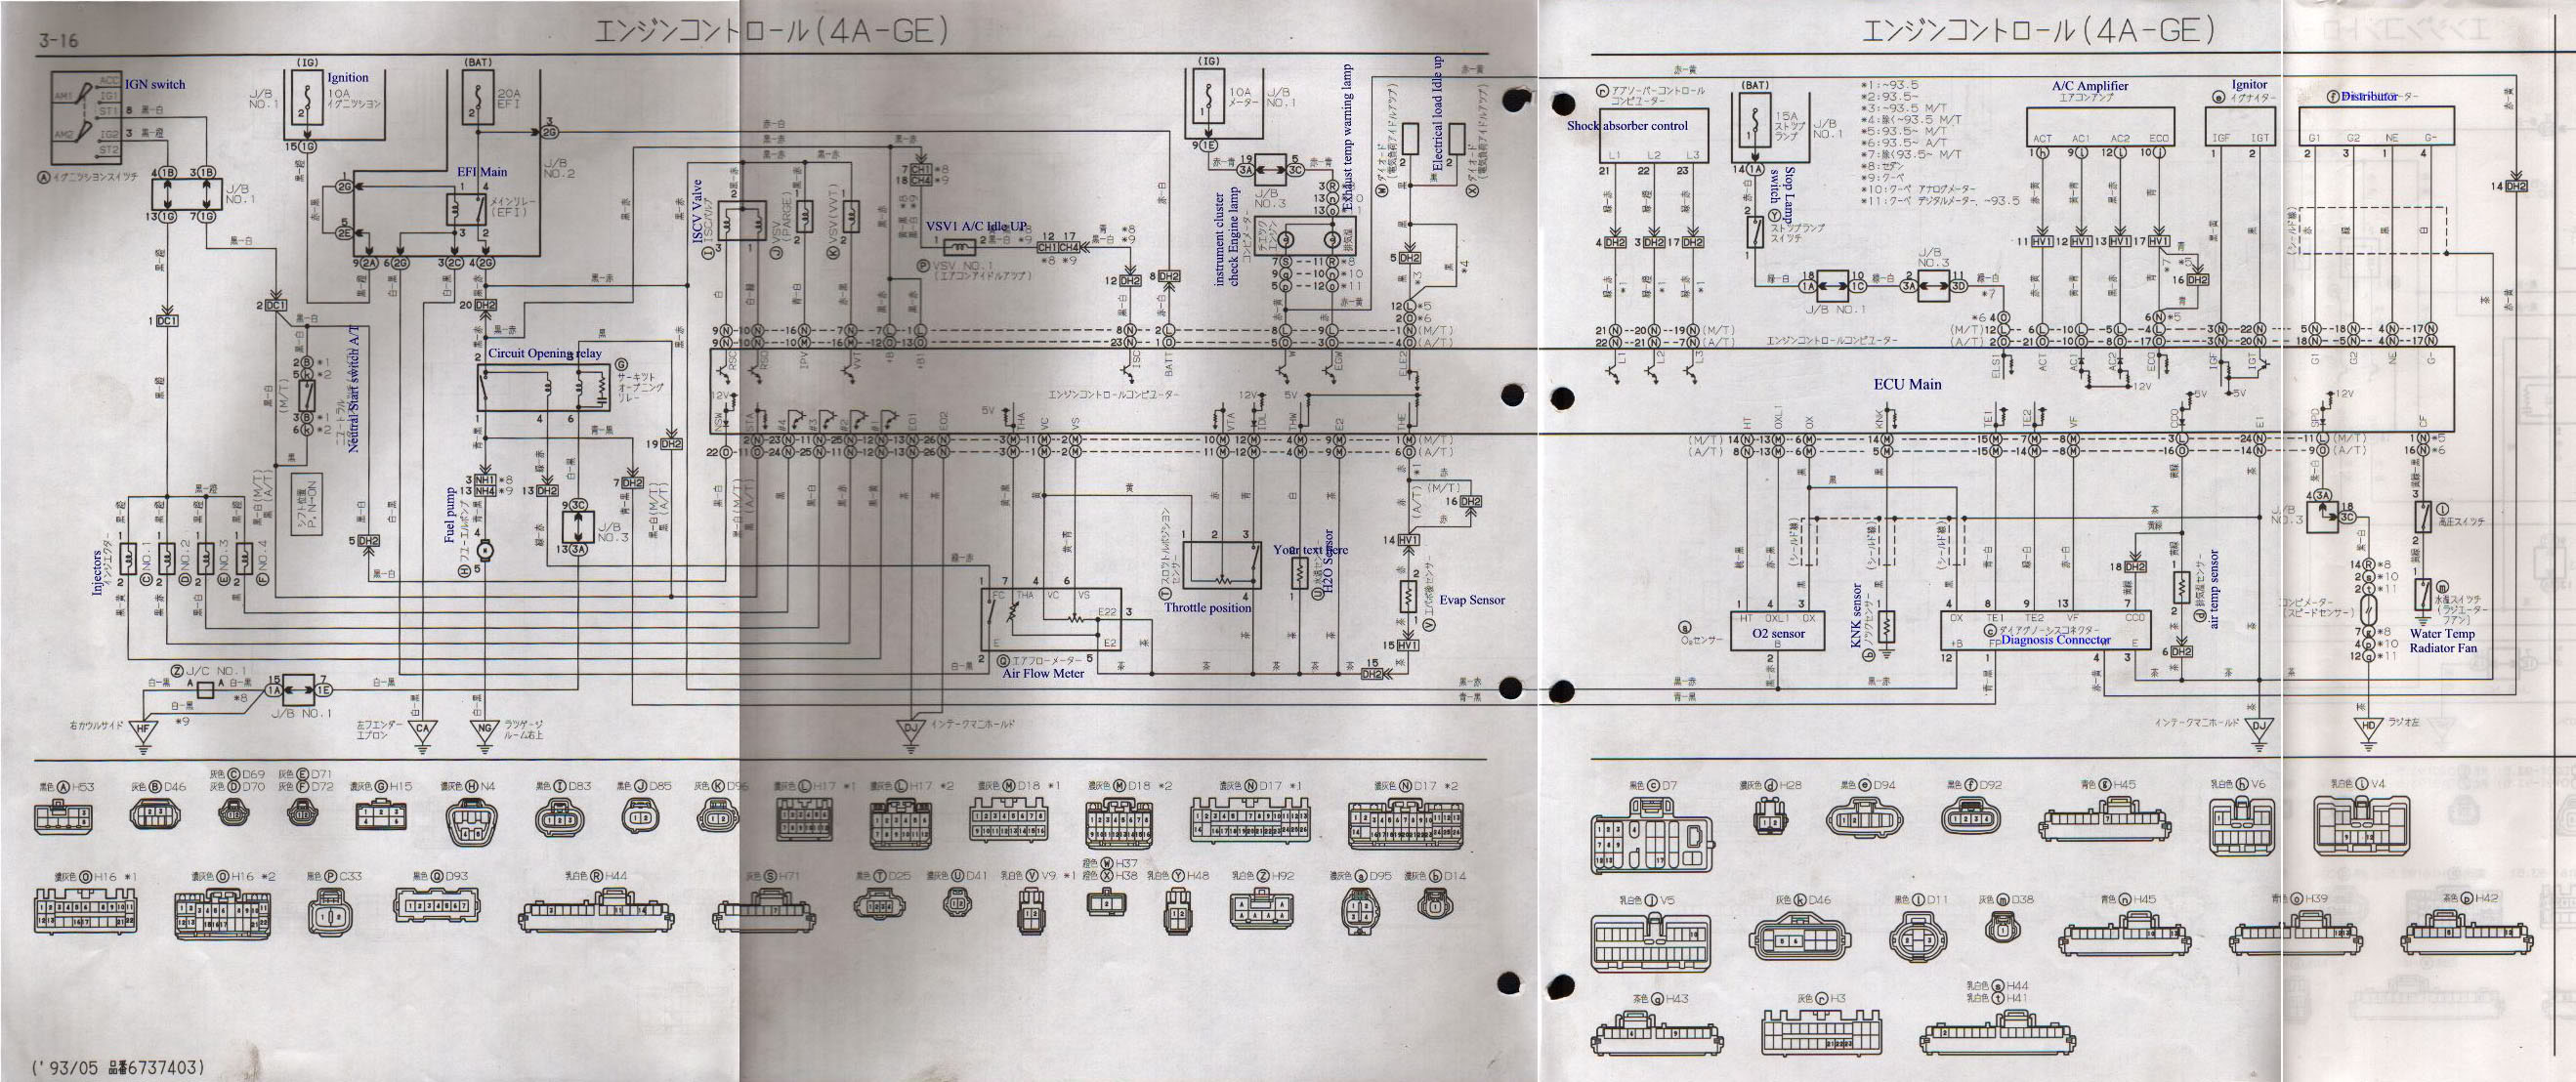 wiring diagram – click to download